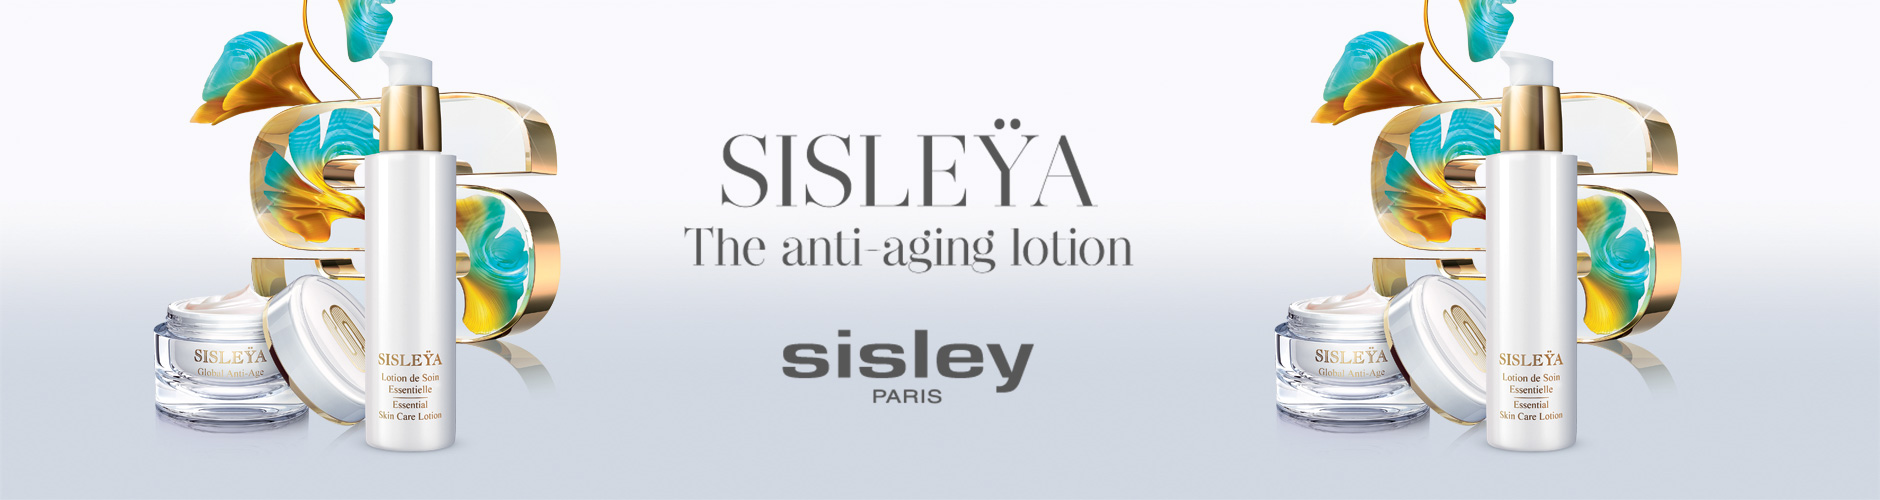 Sisley-Paris